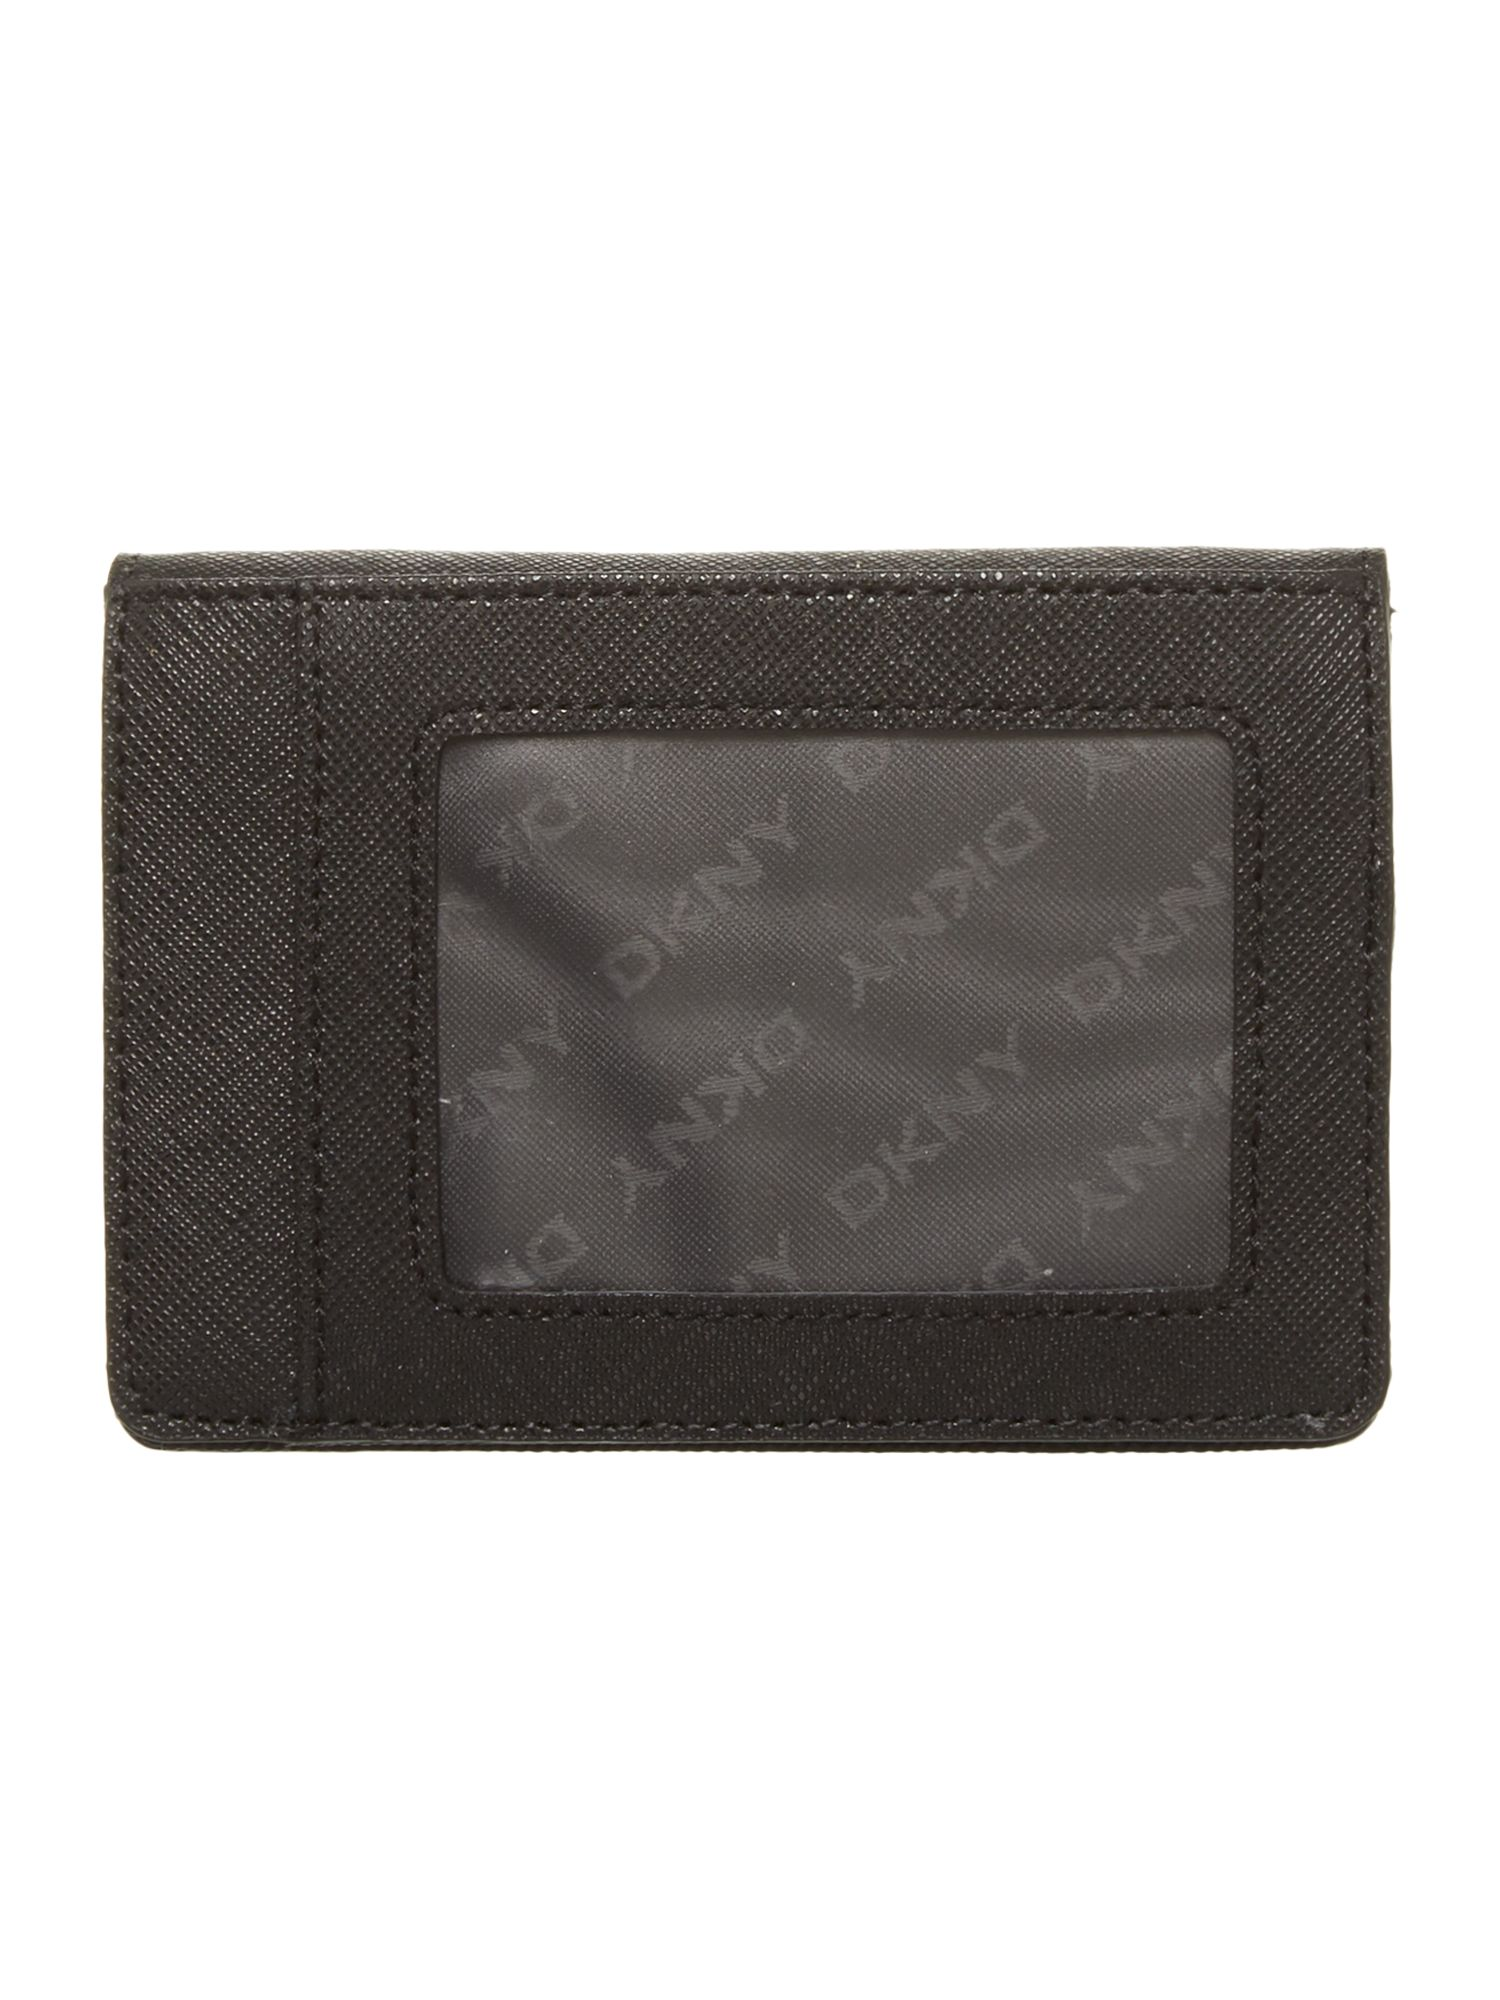 Saffiano black travel card holder